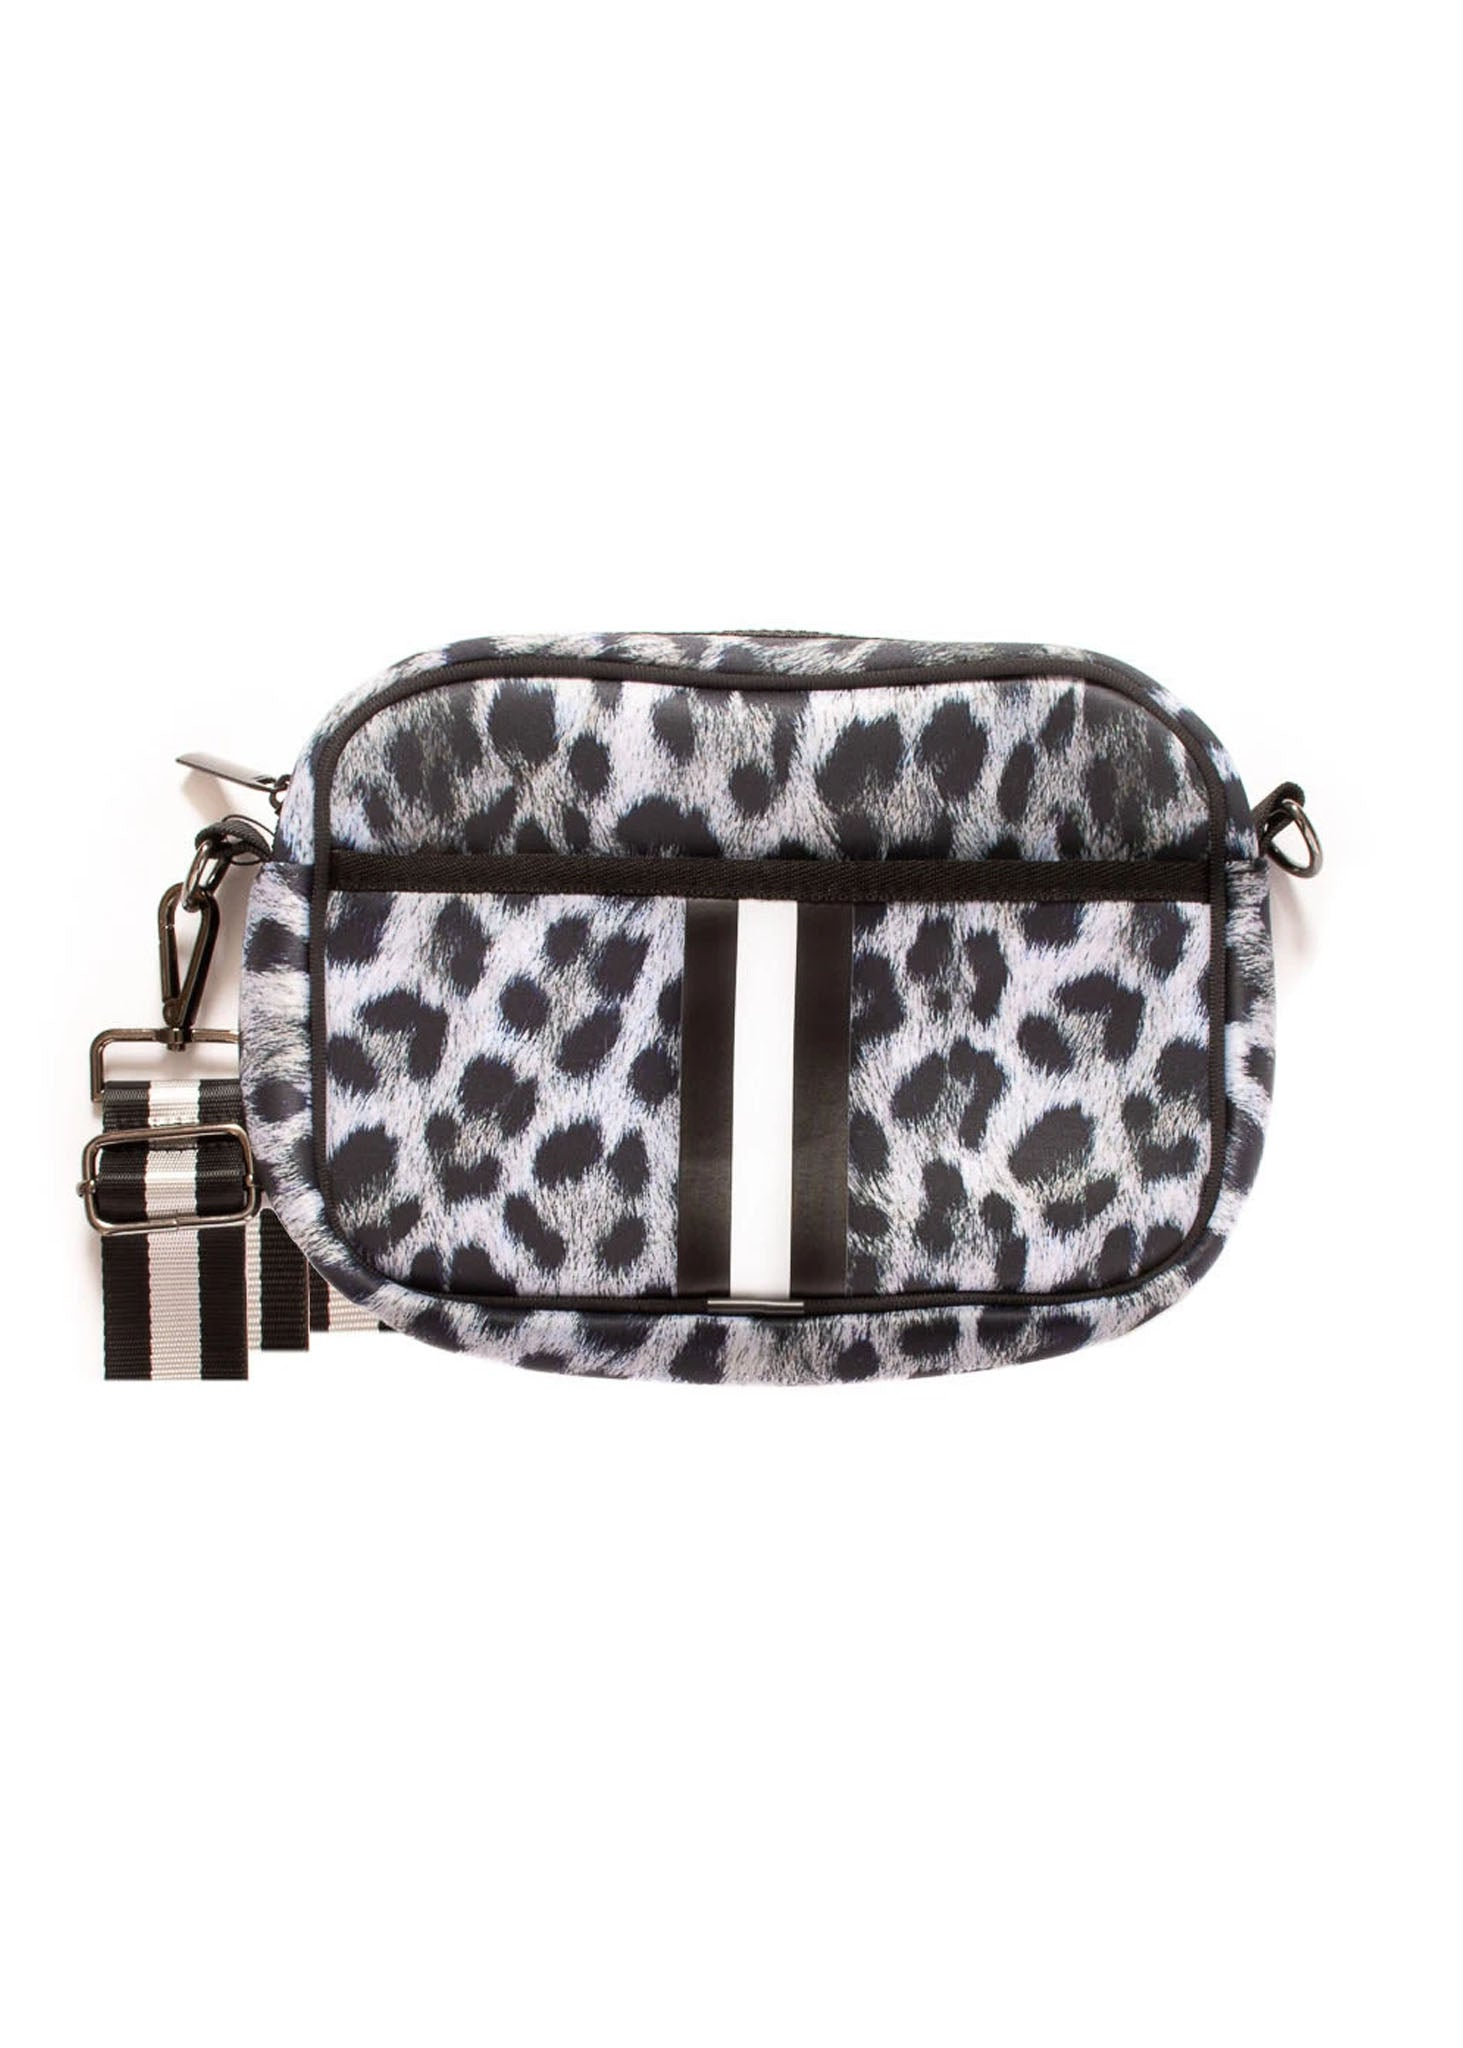 Haute Shore - Drew Babe Crossbody (DREW, Snow Leopard Print w/Black & Cream Stripe)